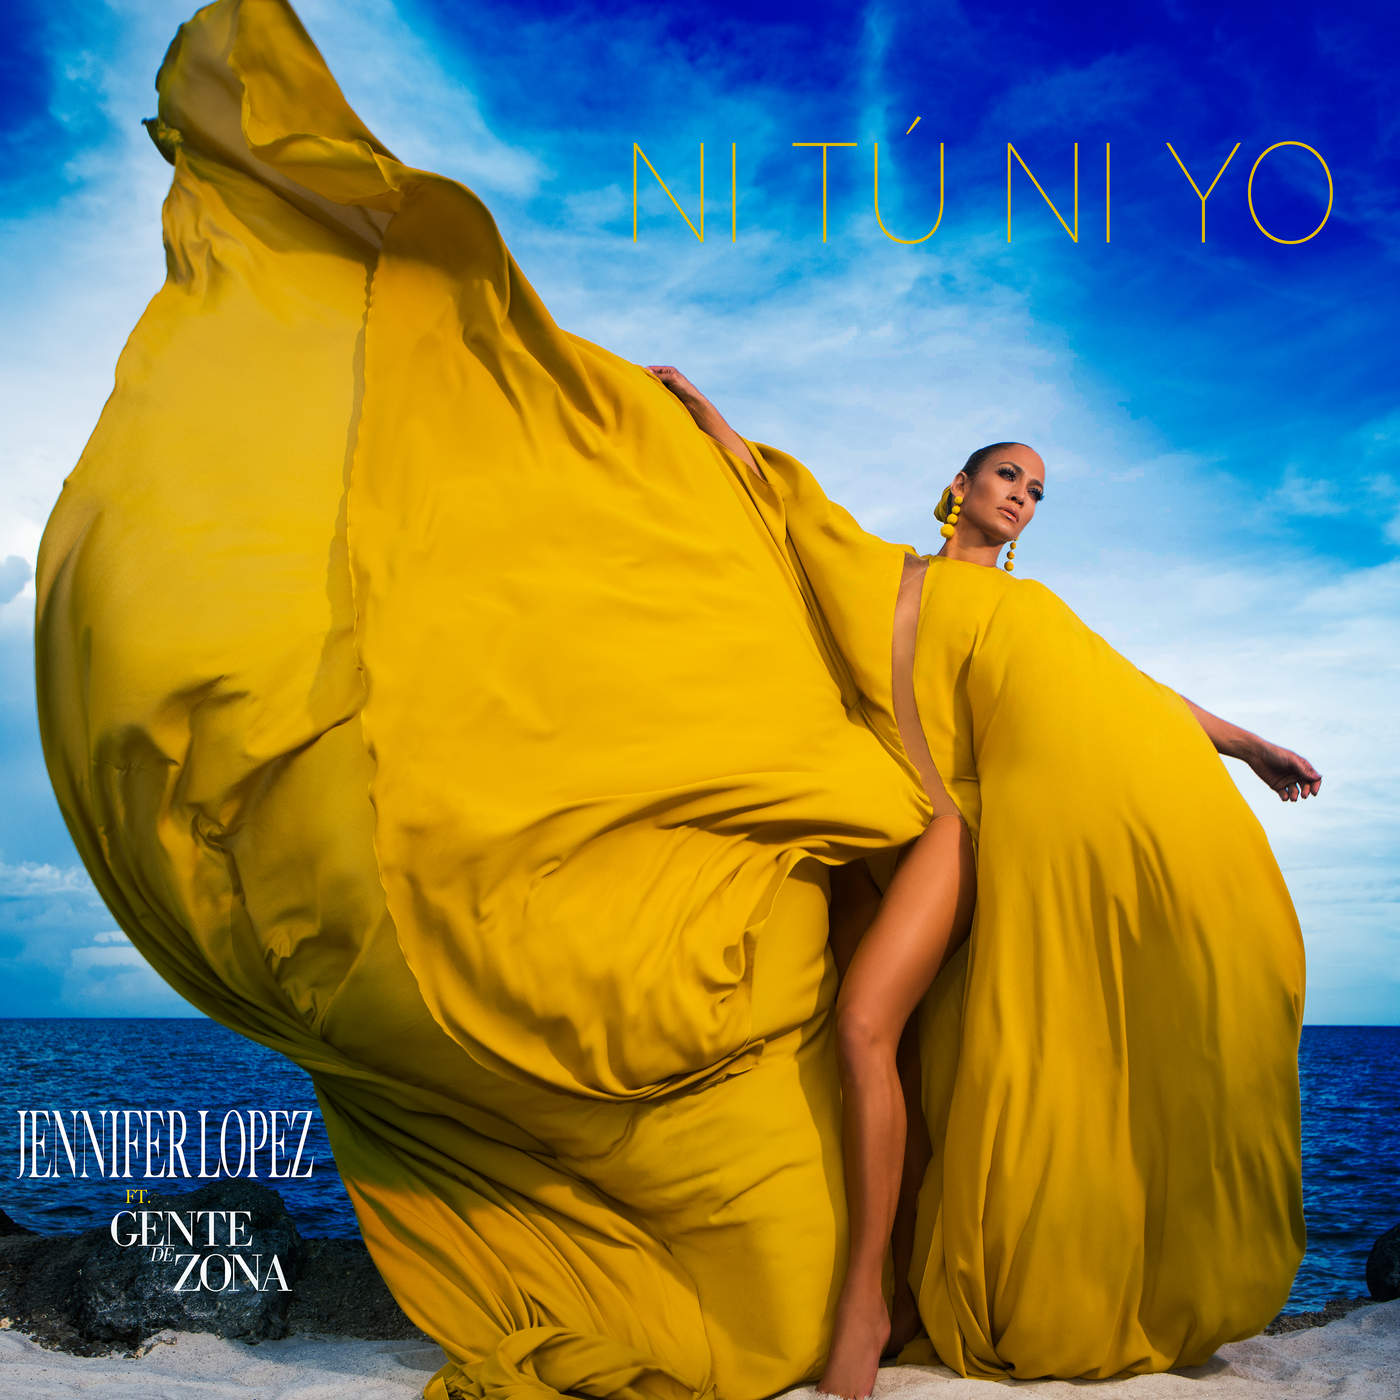 Jennifer Lopez - Ni Tú Ni Yo (feat. Gente de Zona) - Single